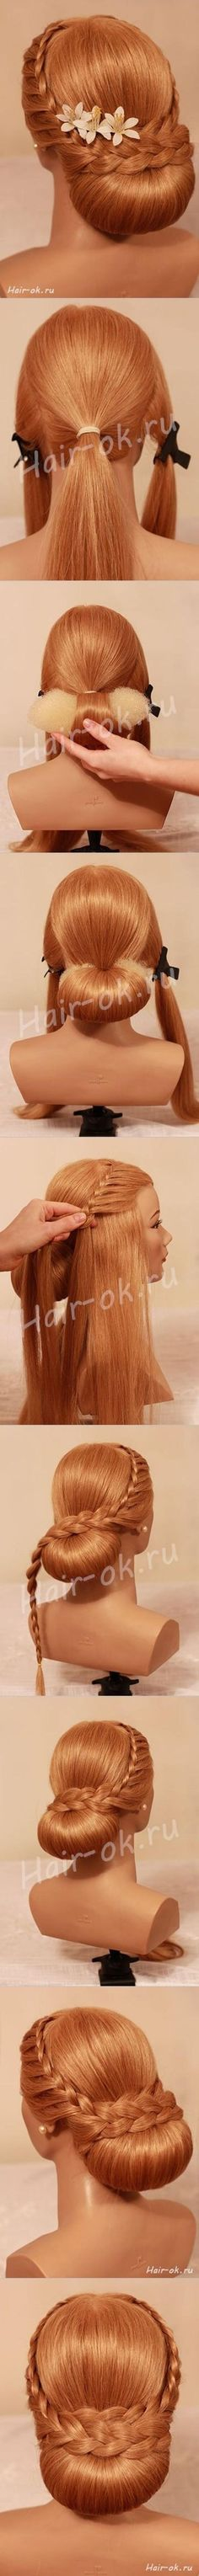 A Bridesmaid's Hair